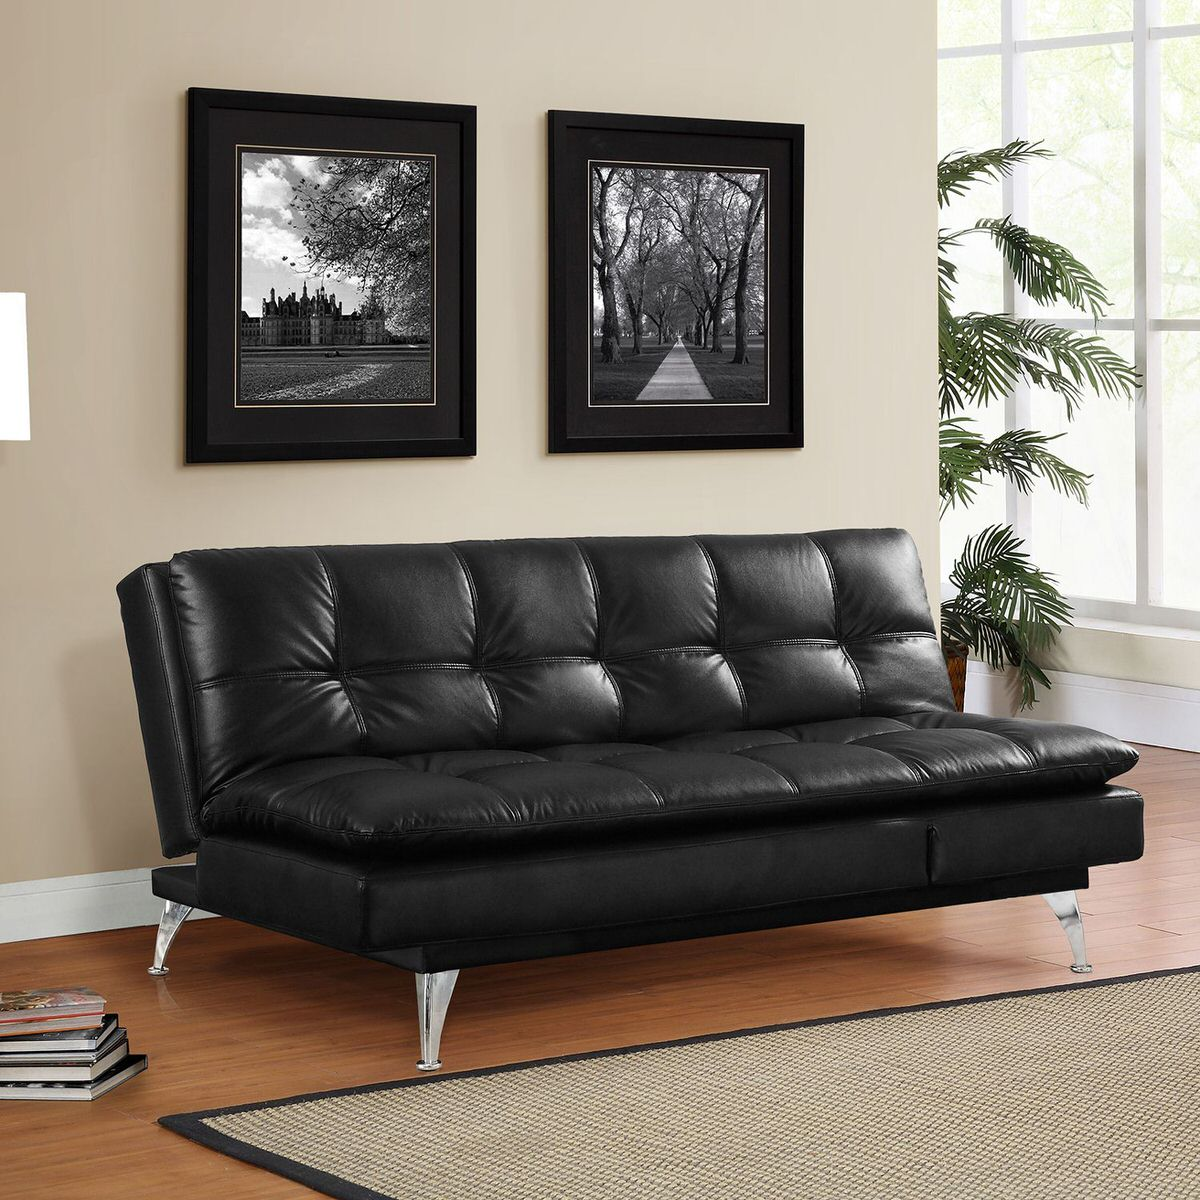 Gabrielle Living Room: Gabrielle Setra Sofa Bed Black By Lifestyle Solutions